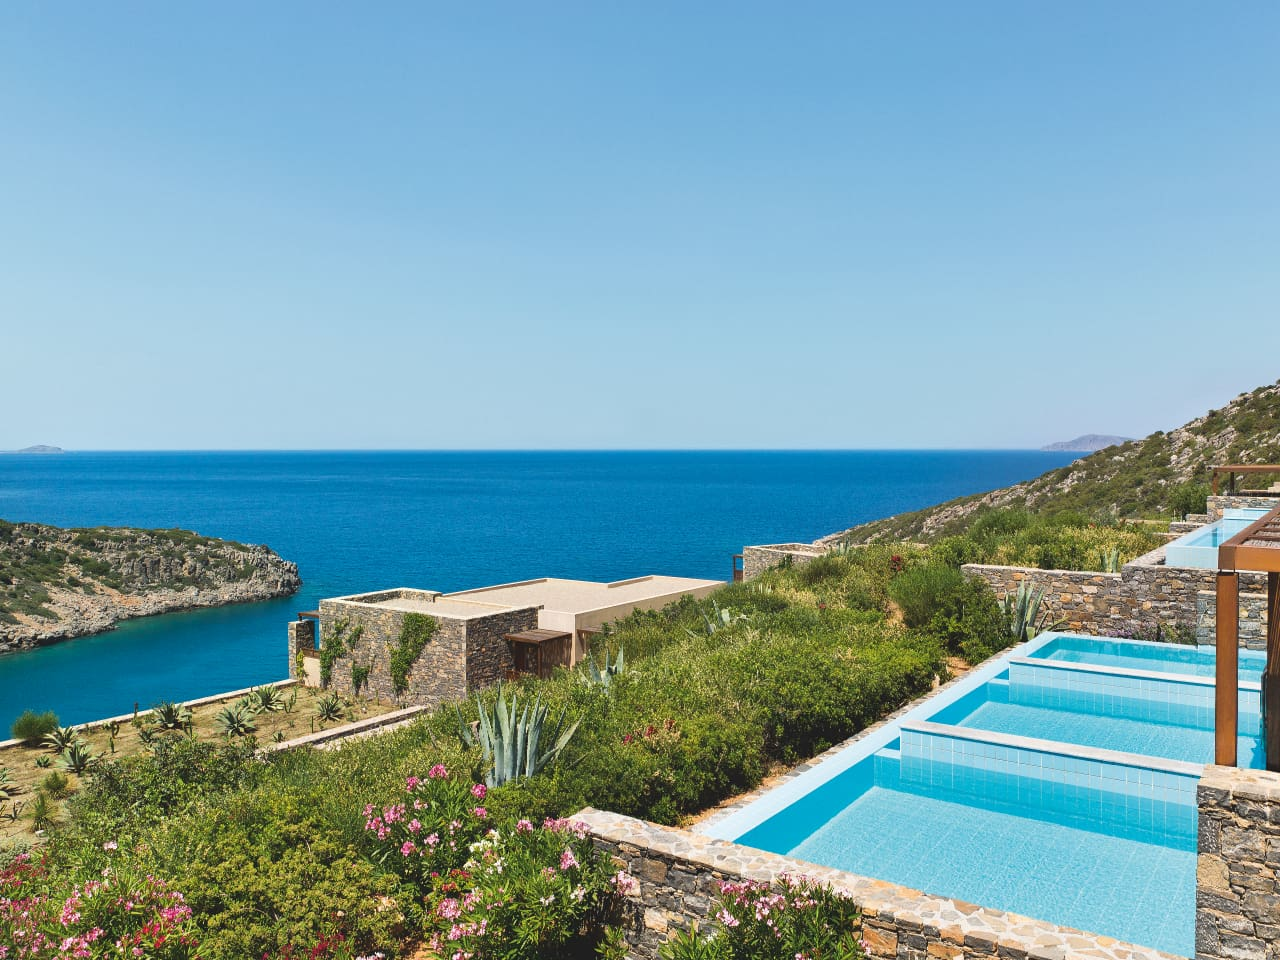 Daios_Cove_Luxury_Resort_&_Villas_enjoy_the_relaxation_mode